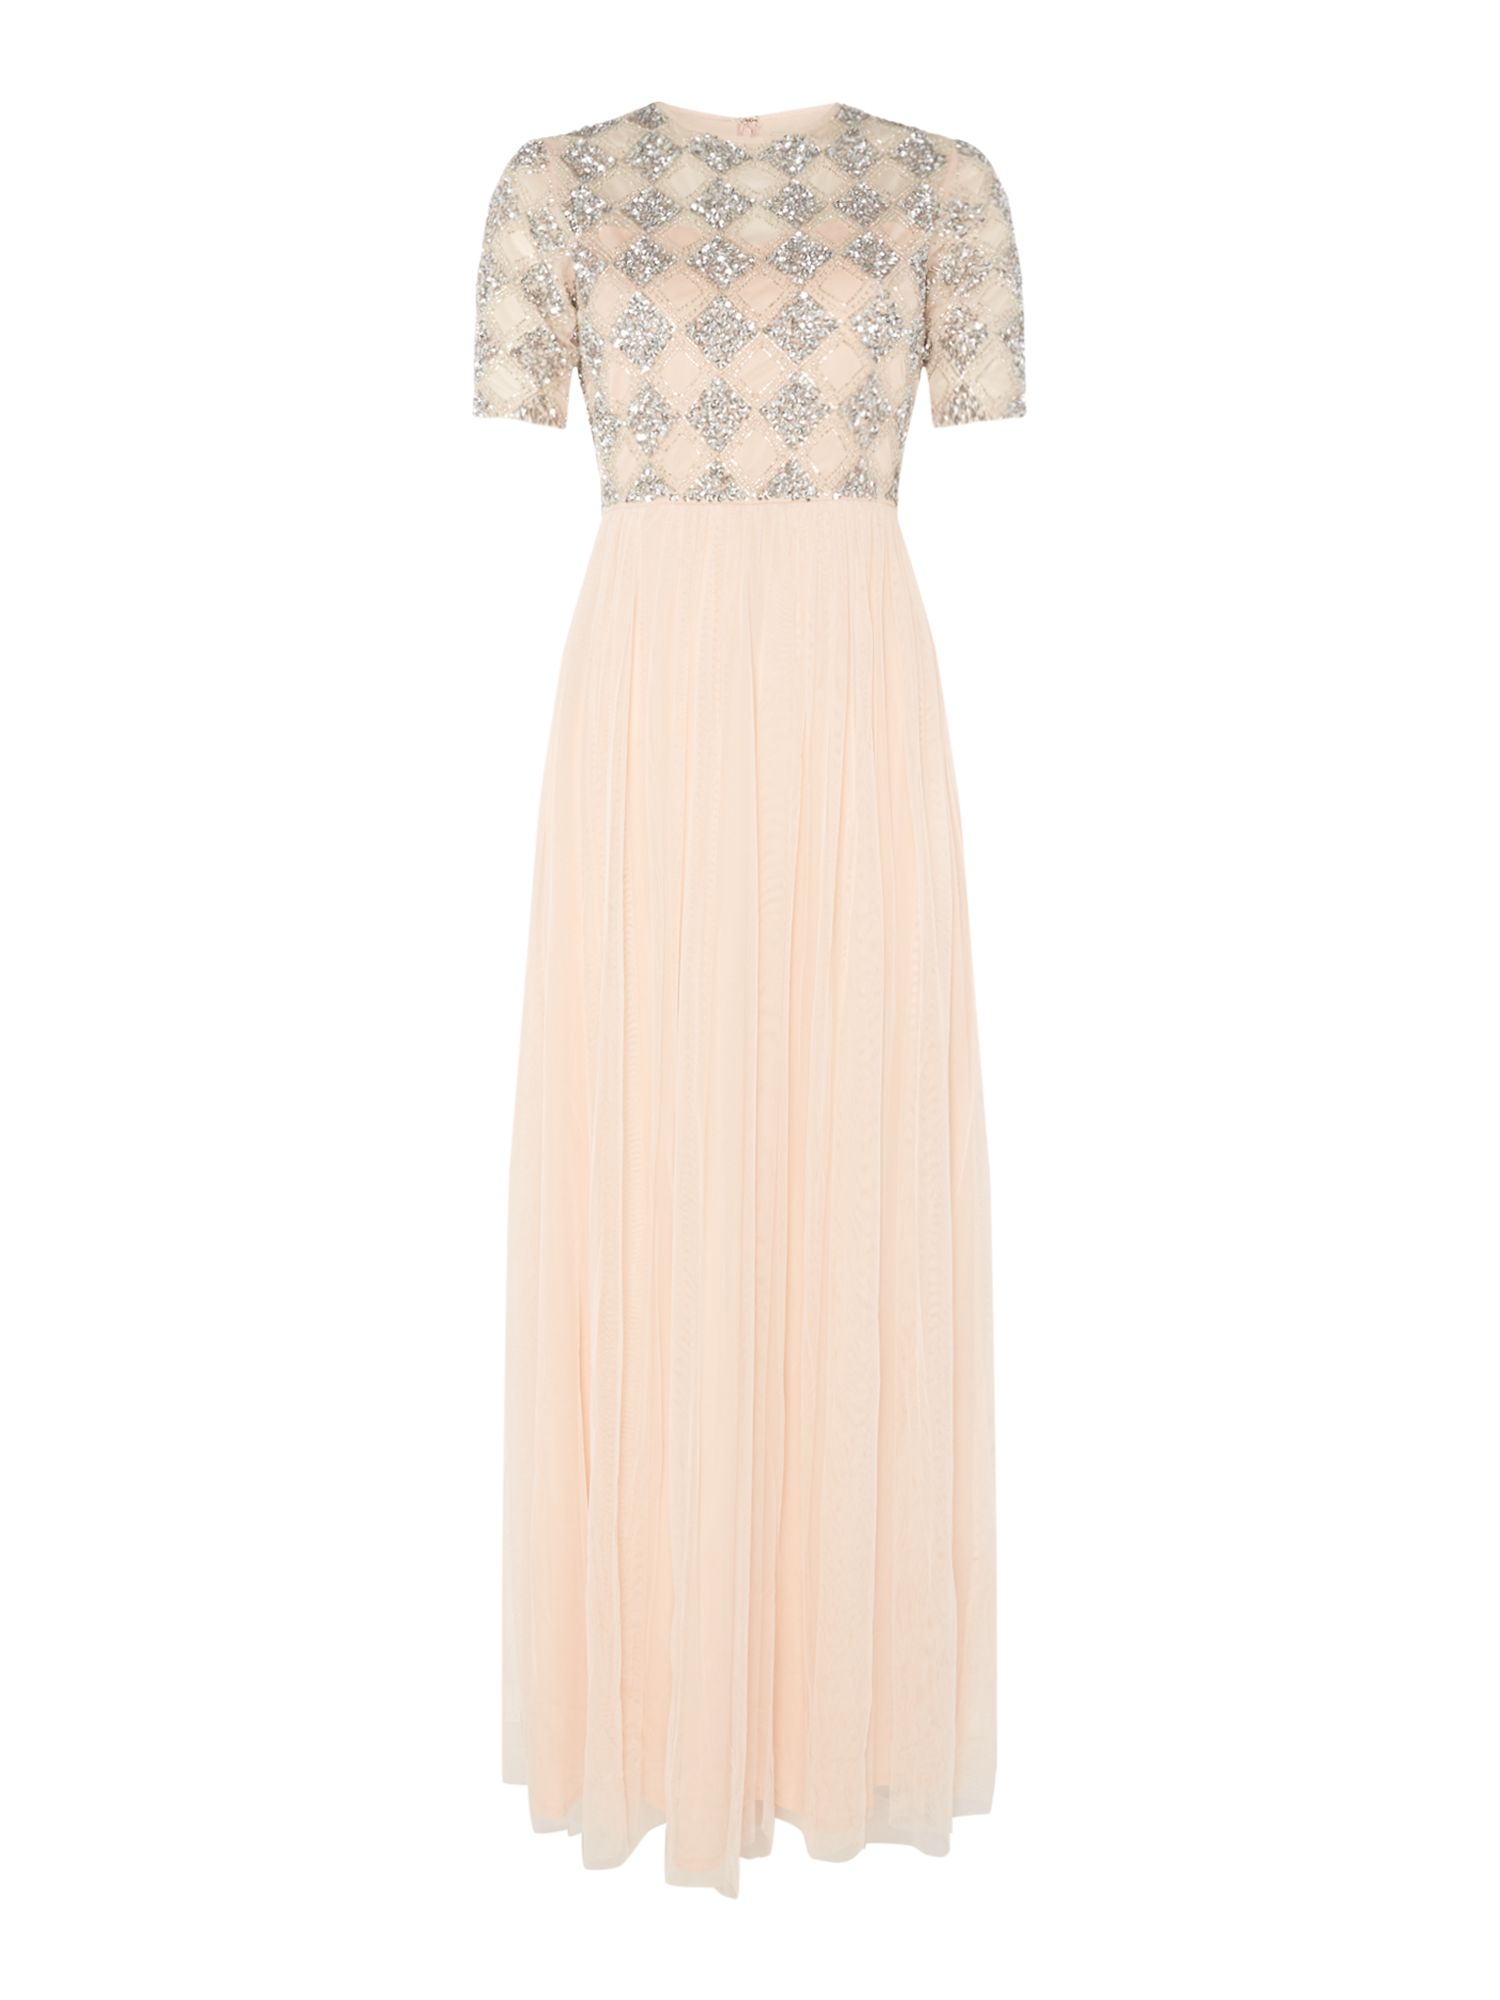 Lace and Beads Sequin short sleeve gown, Nude